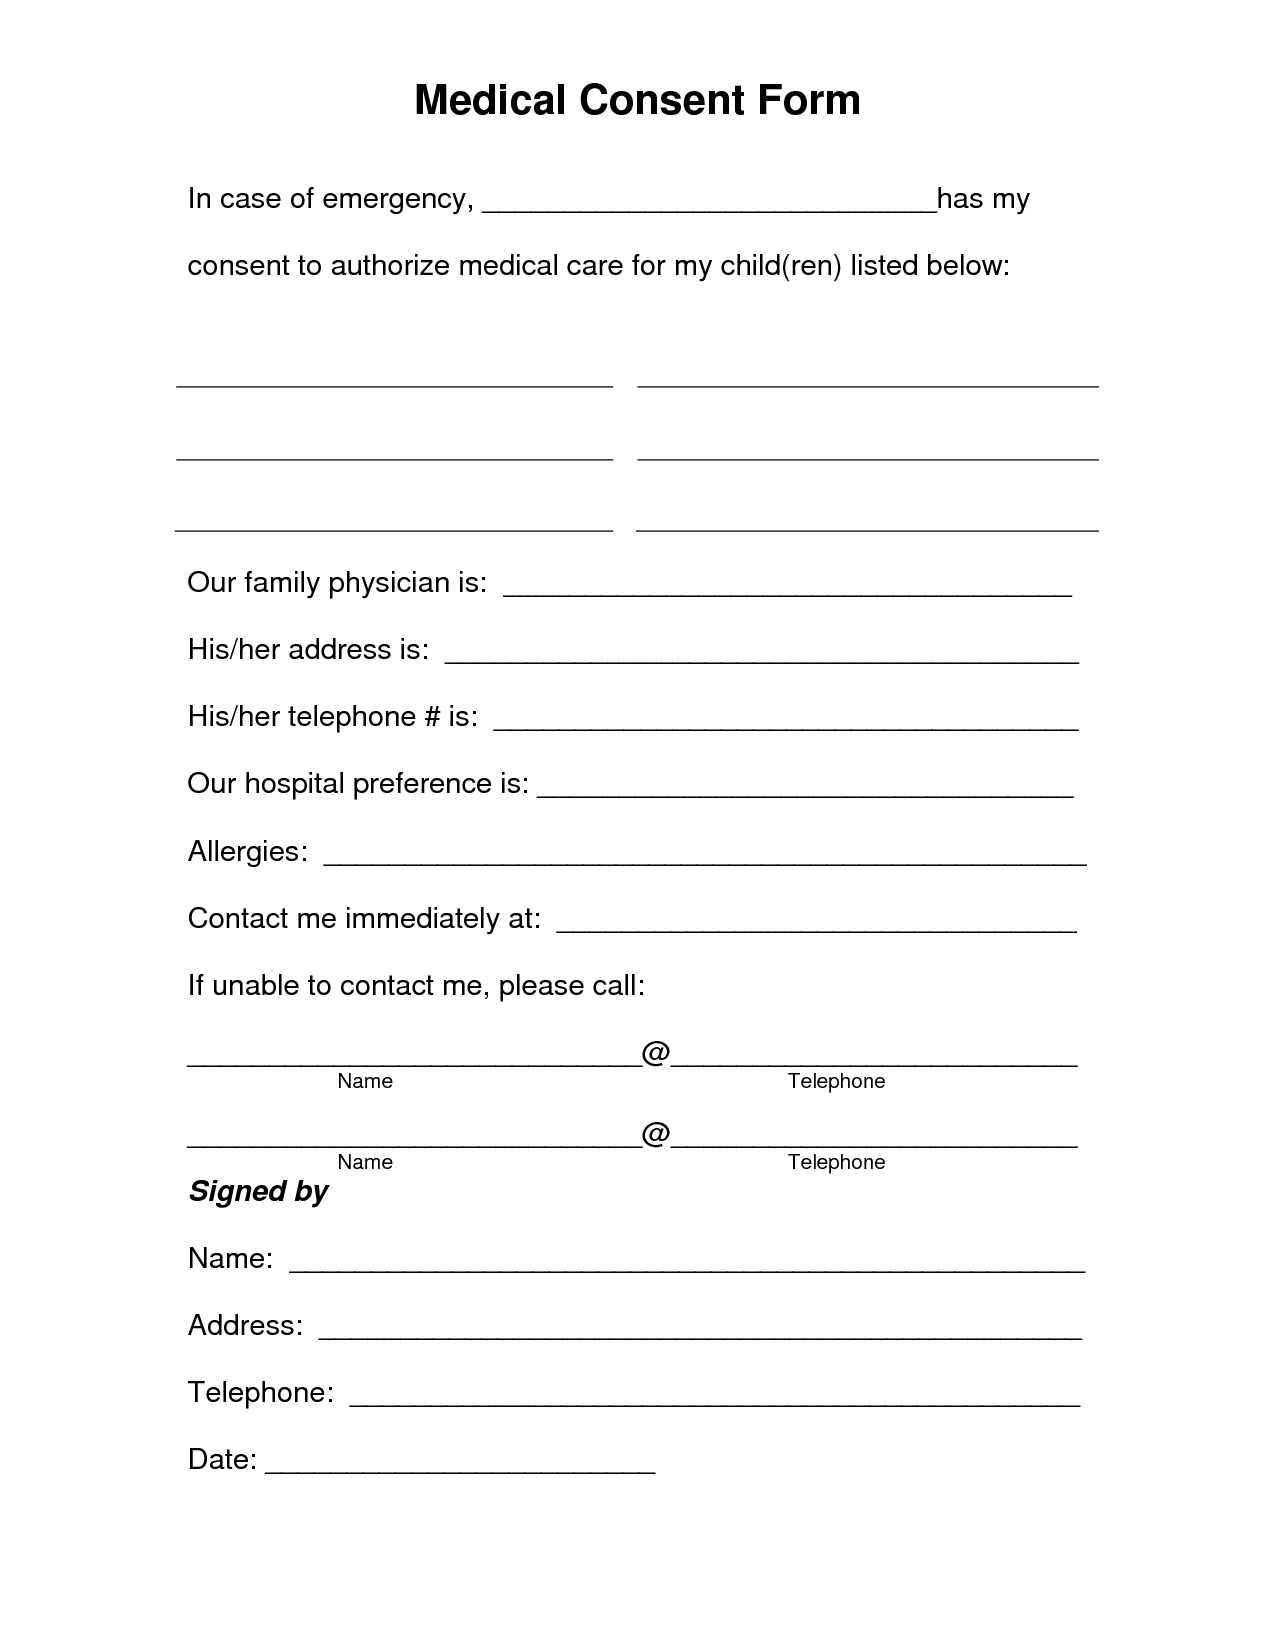 medical consent form template info 549649 medical consent form template sample medical